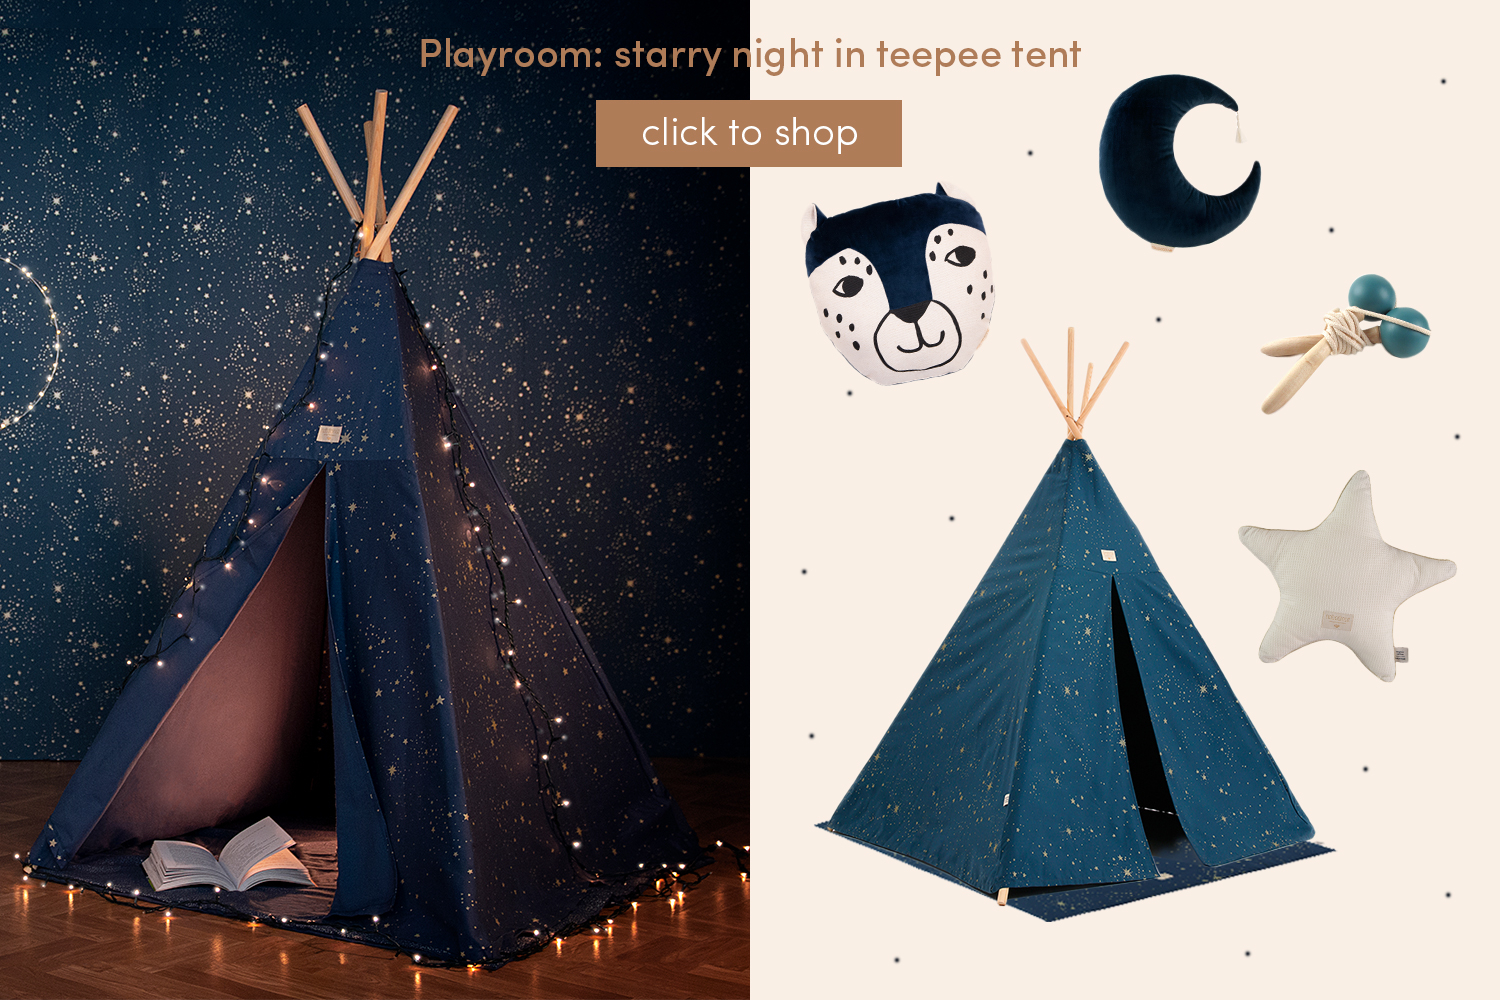 Playroom: starry night in teepee tent